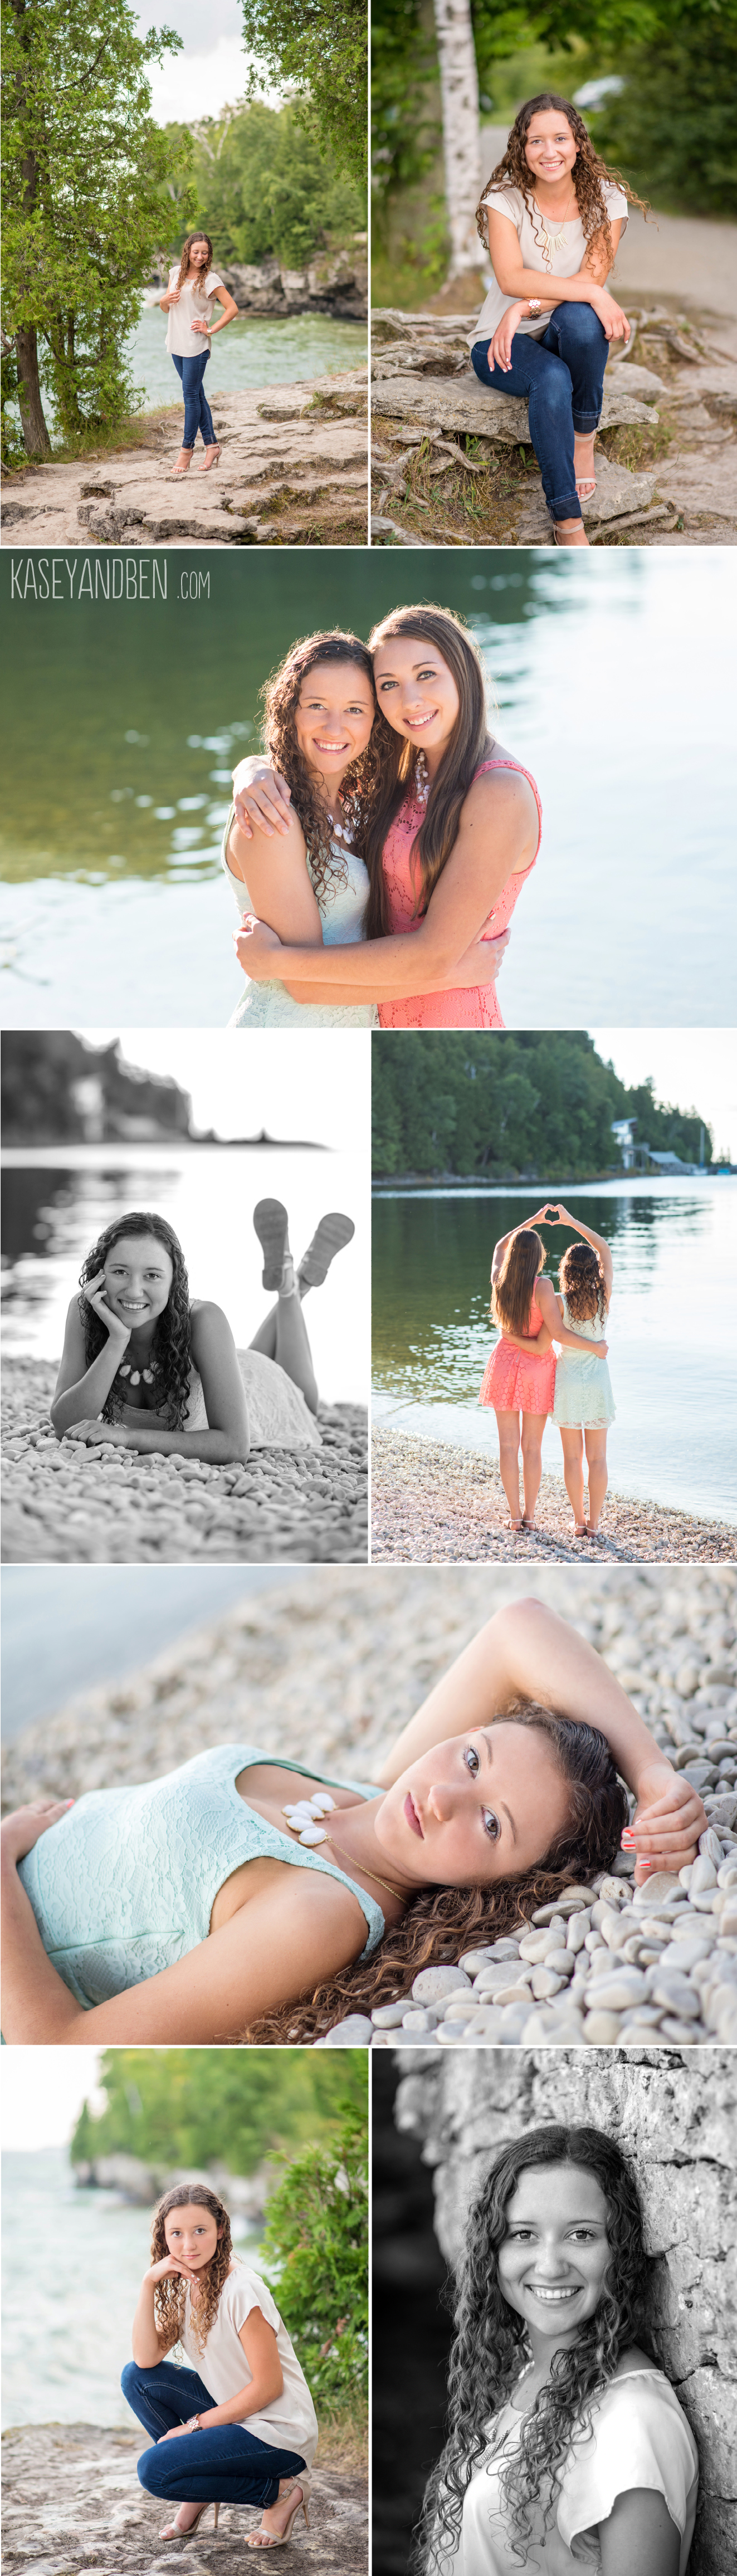 Cave-Point-Senior-Photos-Door-County-Photographer-Pebble-Beach-Senior-Portraits-Green-Bay